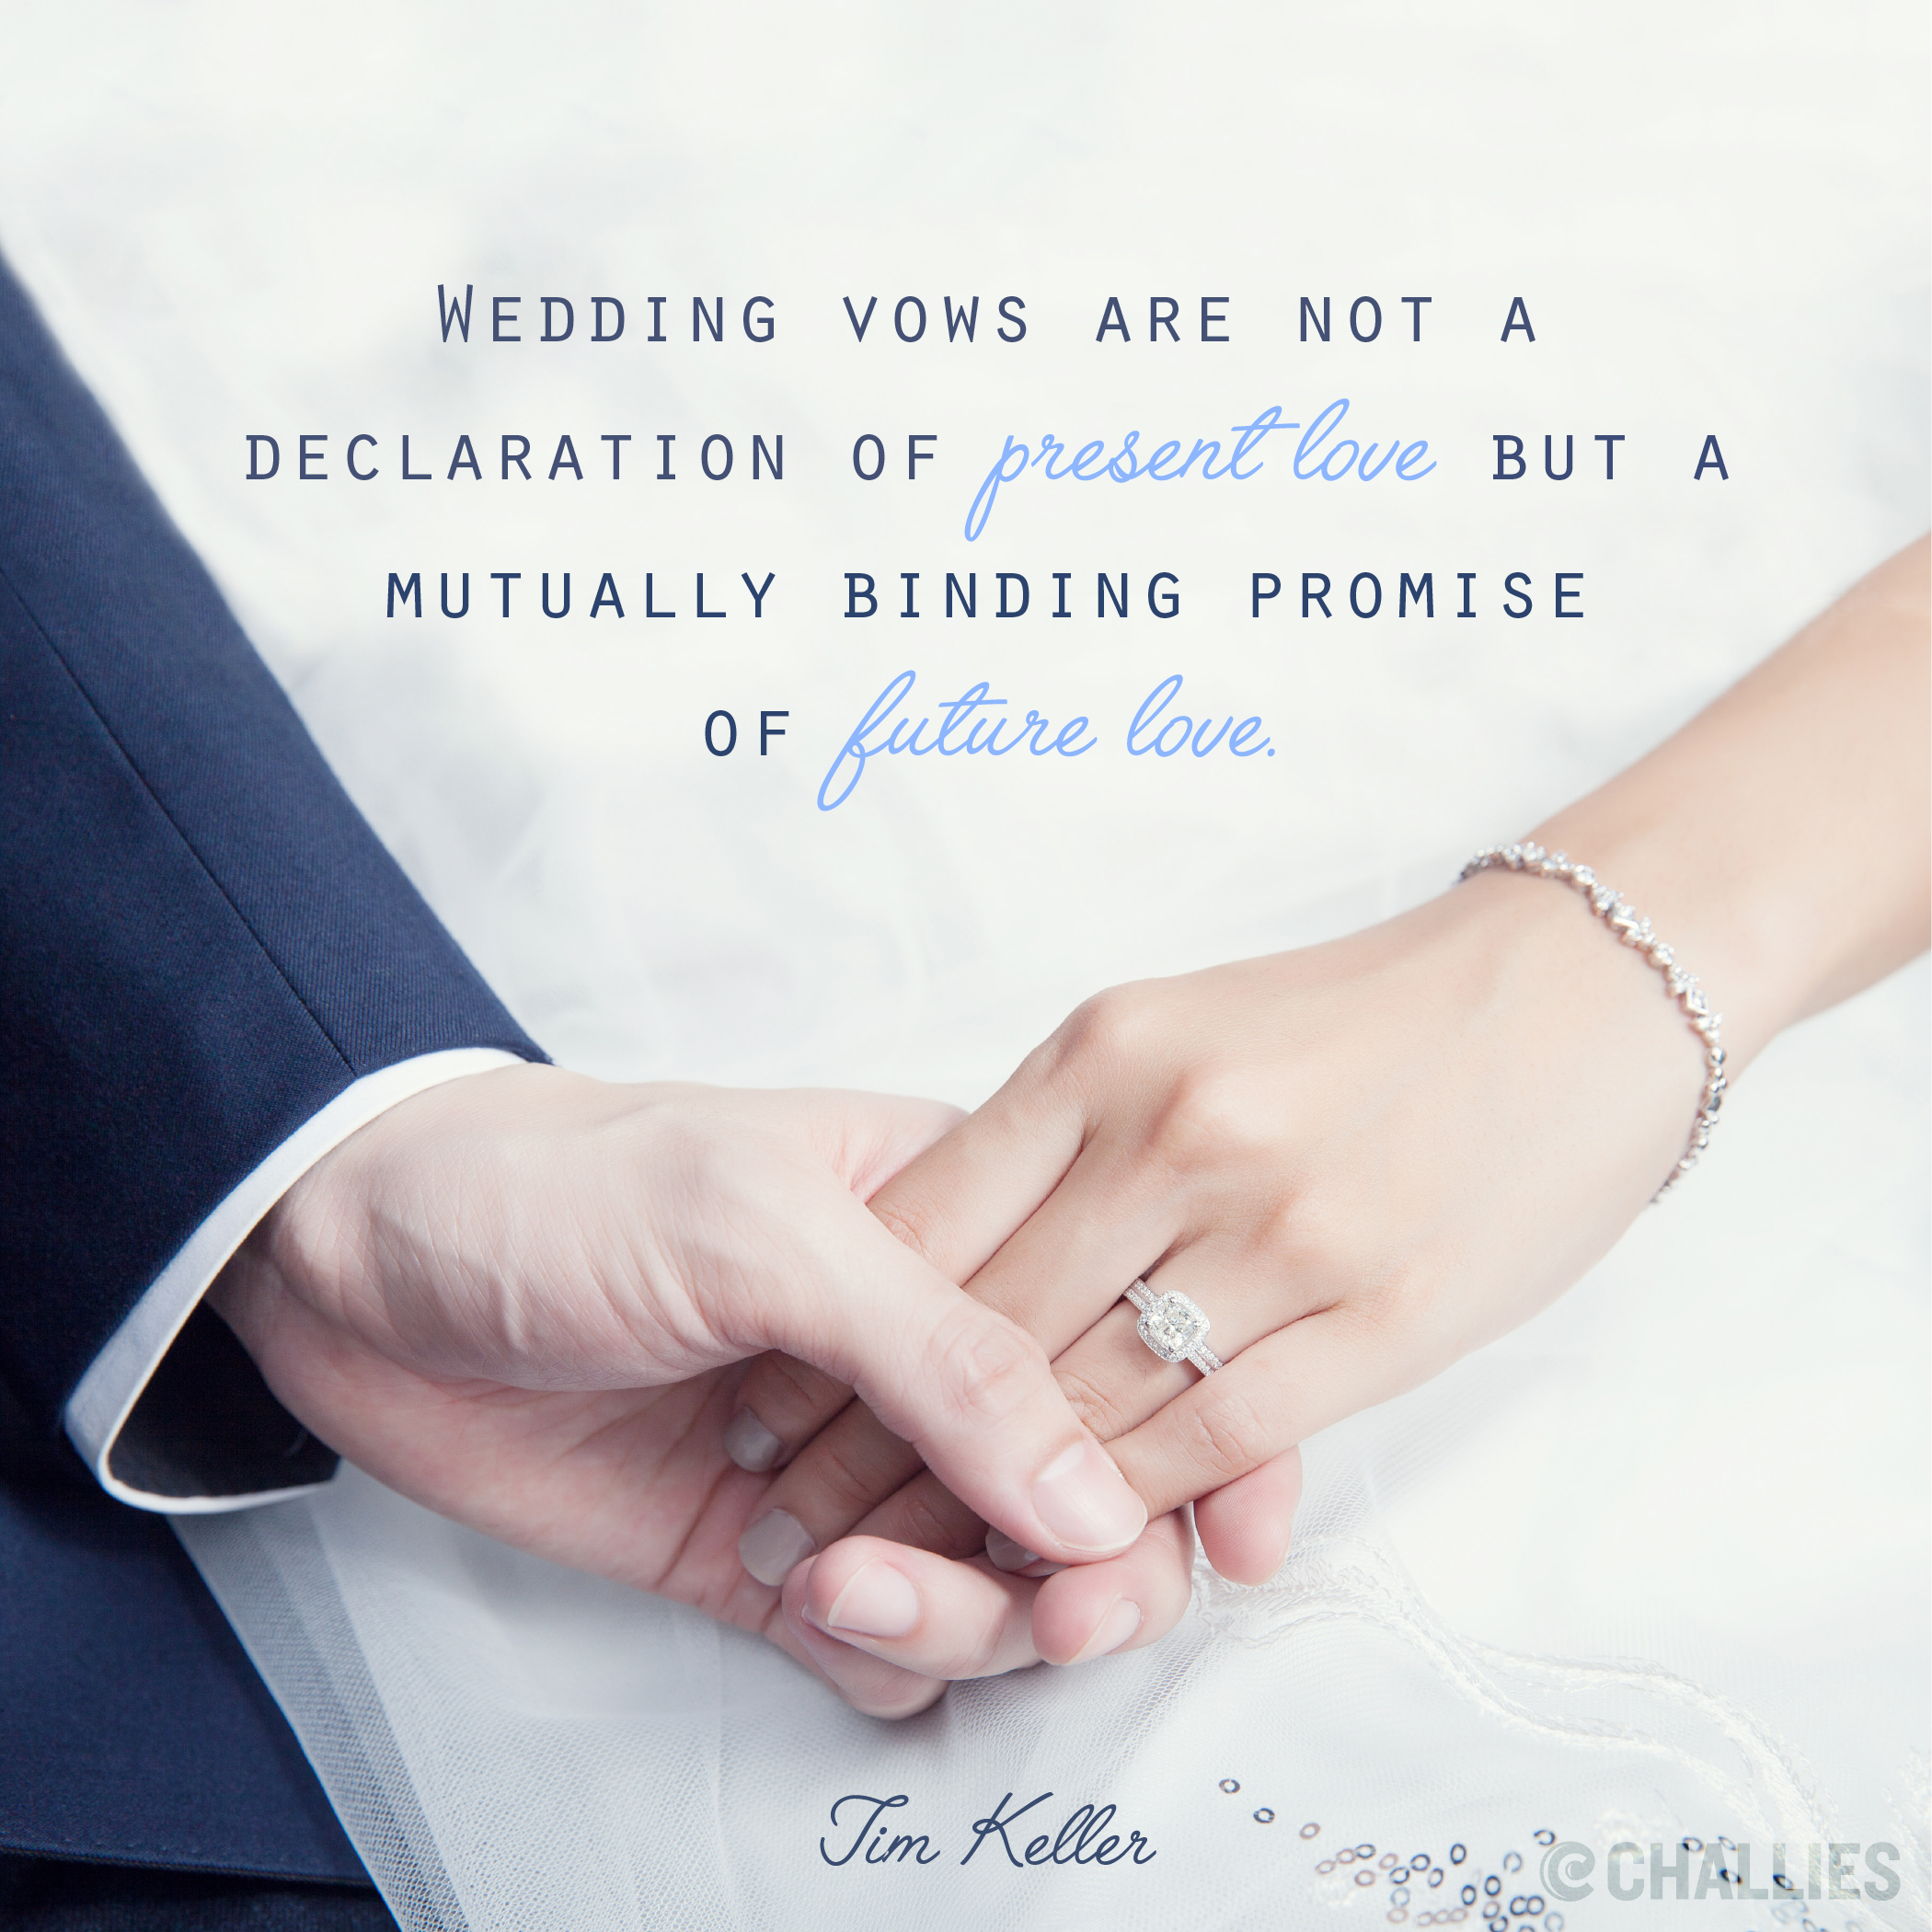 Timothy Keller Quotes Wedding Vows Are Not A Declaration Of Present Love But A Mutually